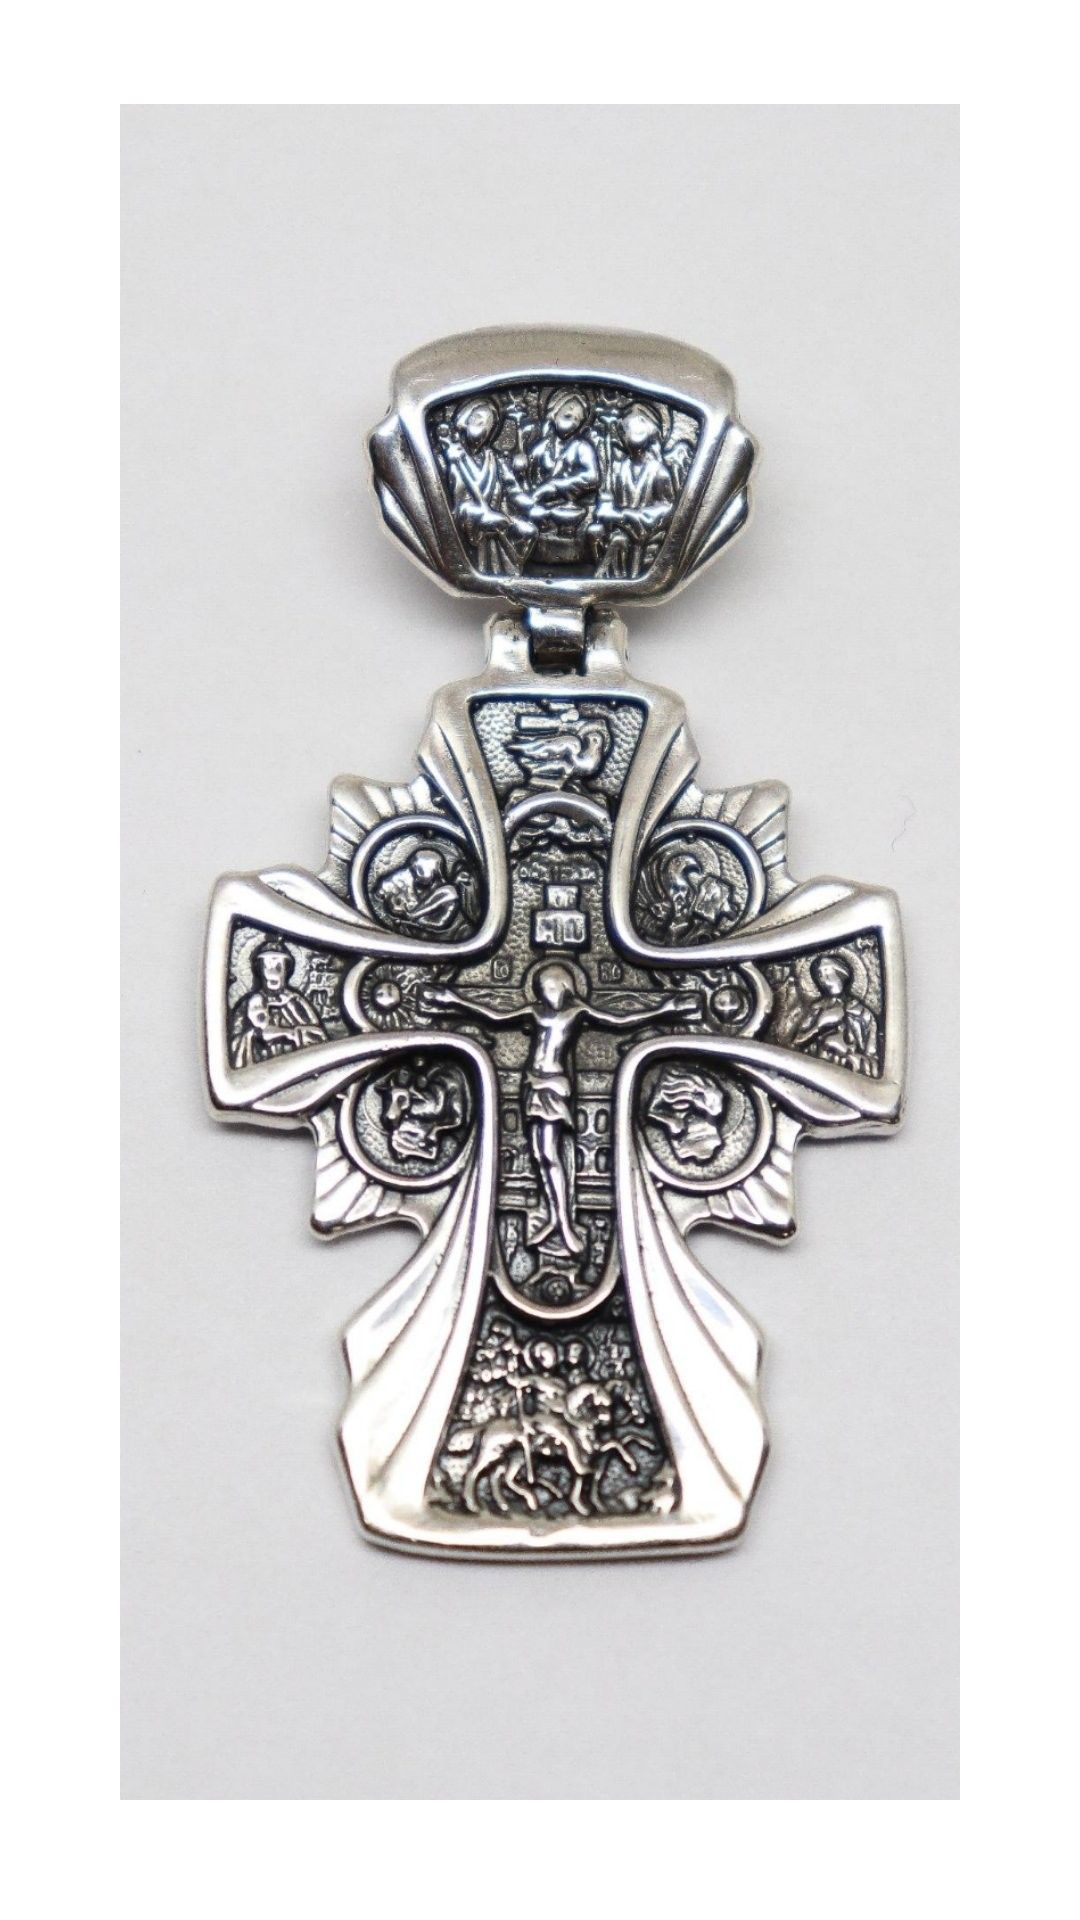 Solid 925 Sterling Silver Antiqued-Style Large Caravaca INRI Crucifix Cross Pendant